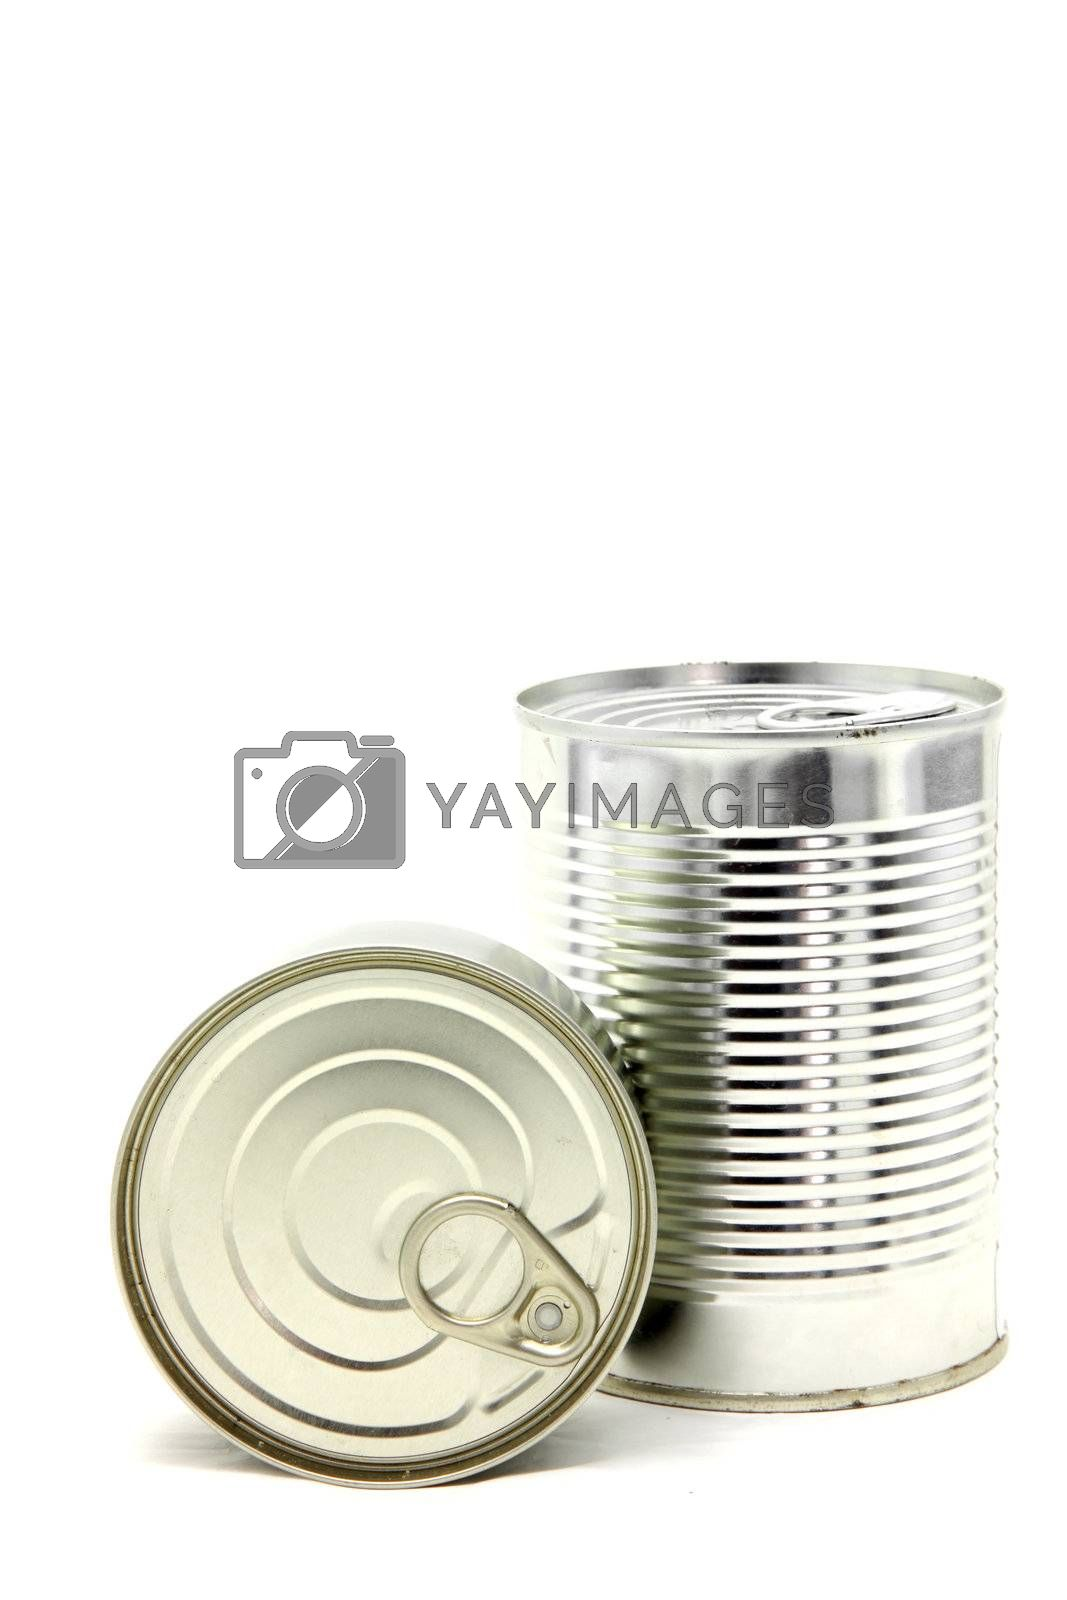 perspective Isolated of Aluminum metal can on white background